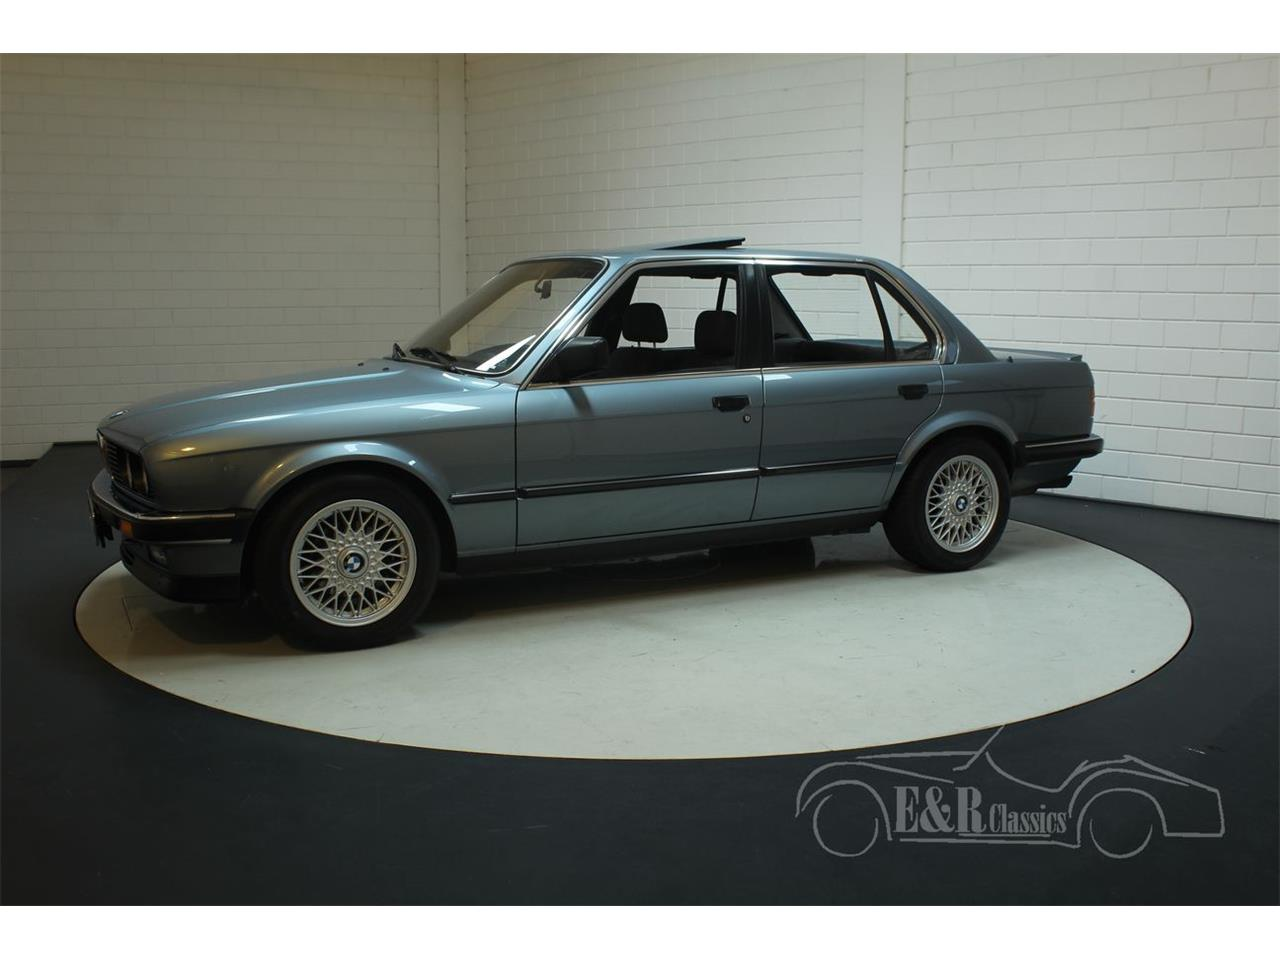 Large Picture of '86 325i located in Waalwijk - Keine Angabe - - $33,850.00 Offered by E & R Classics - PGT1